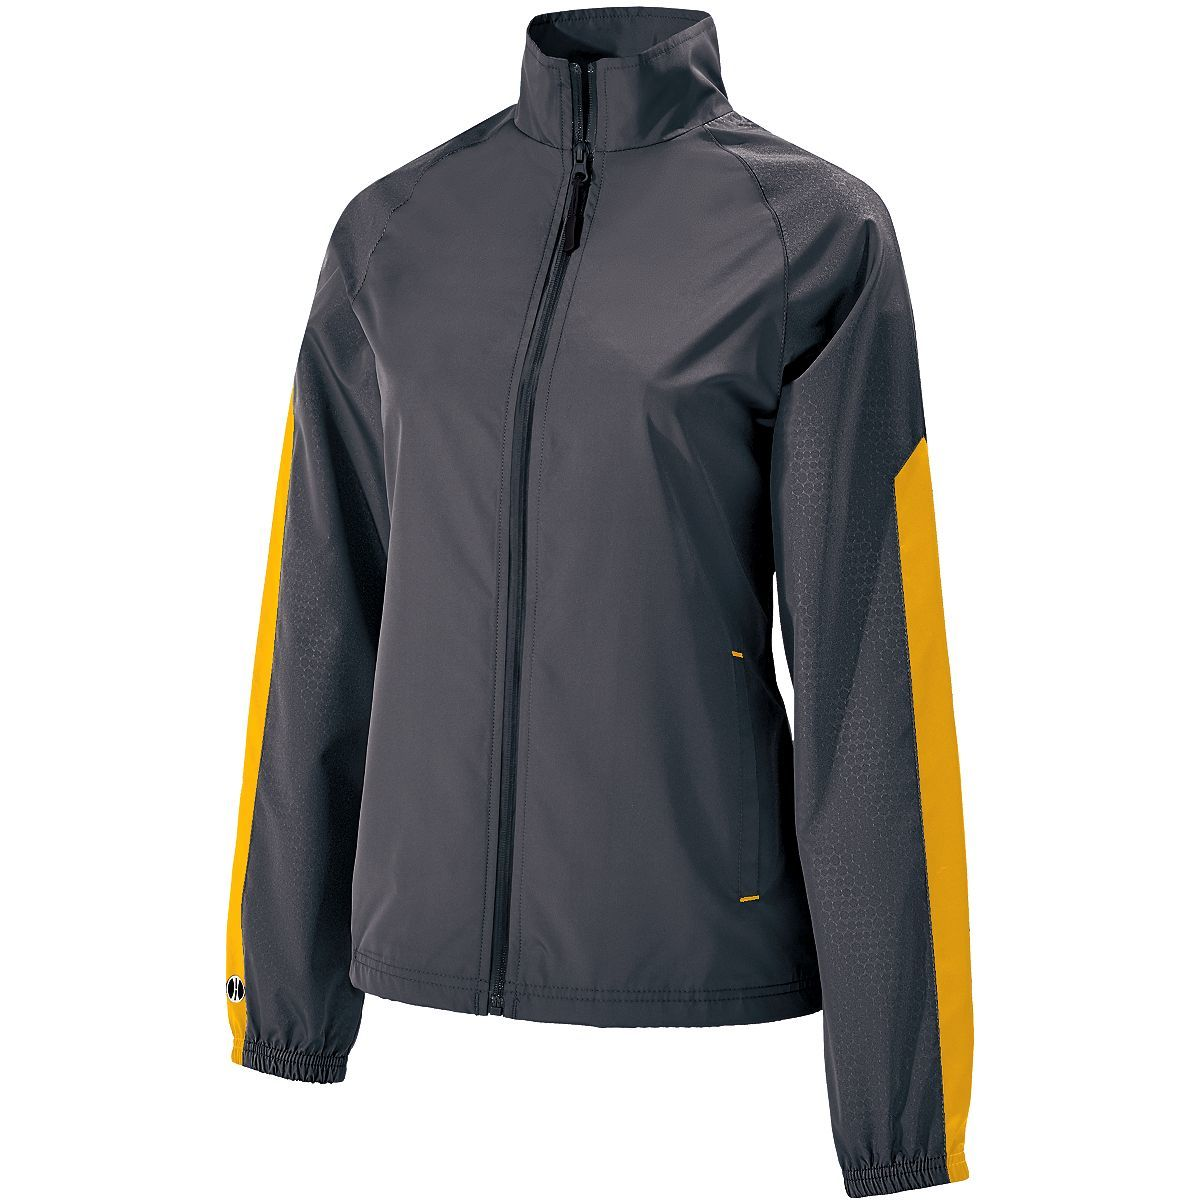 Ladies Bionic Jacket - Carbon/light Gold